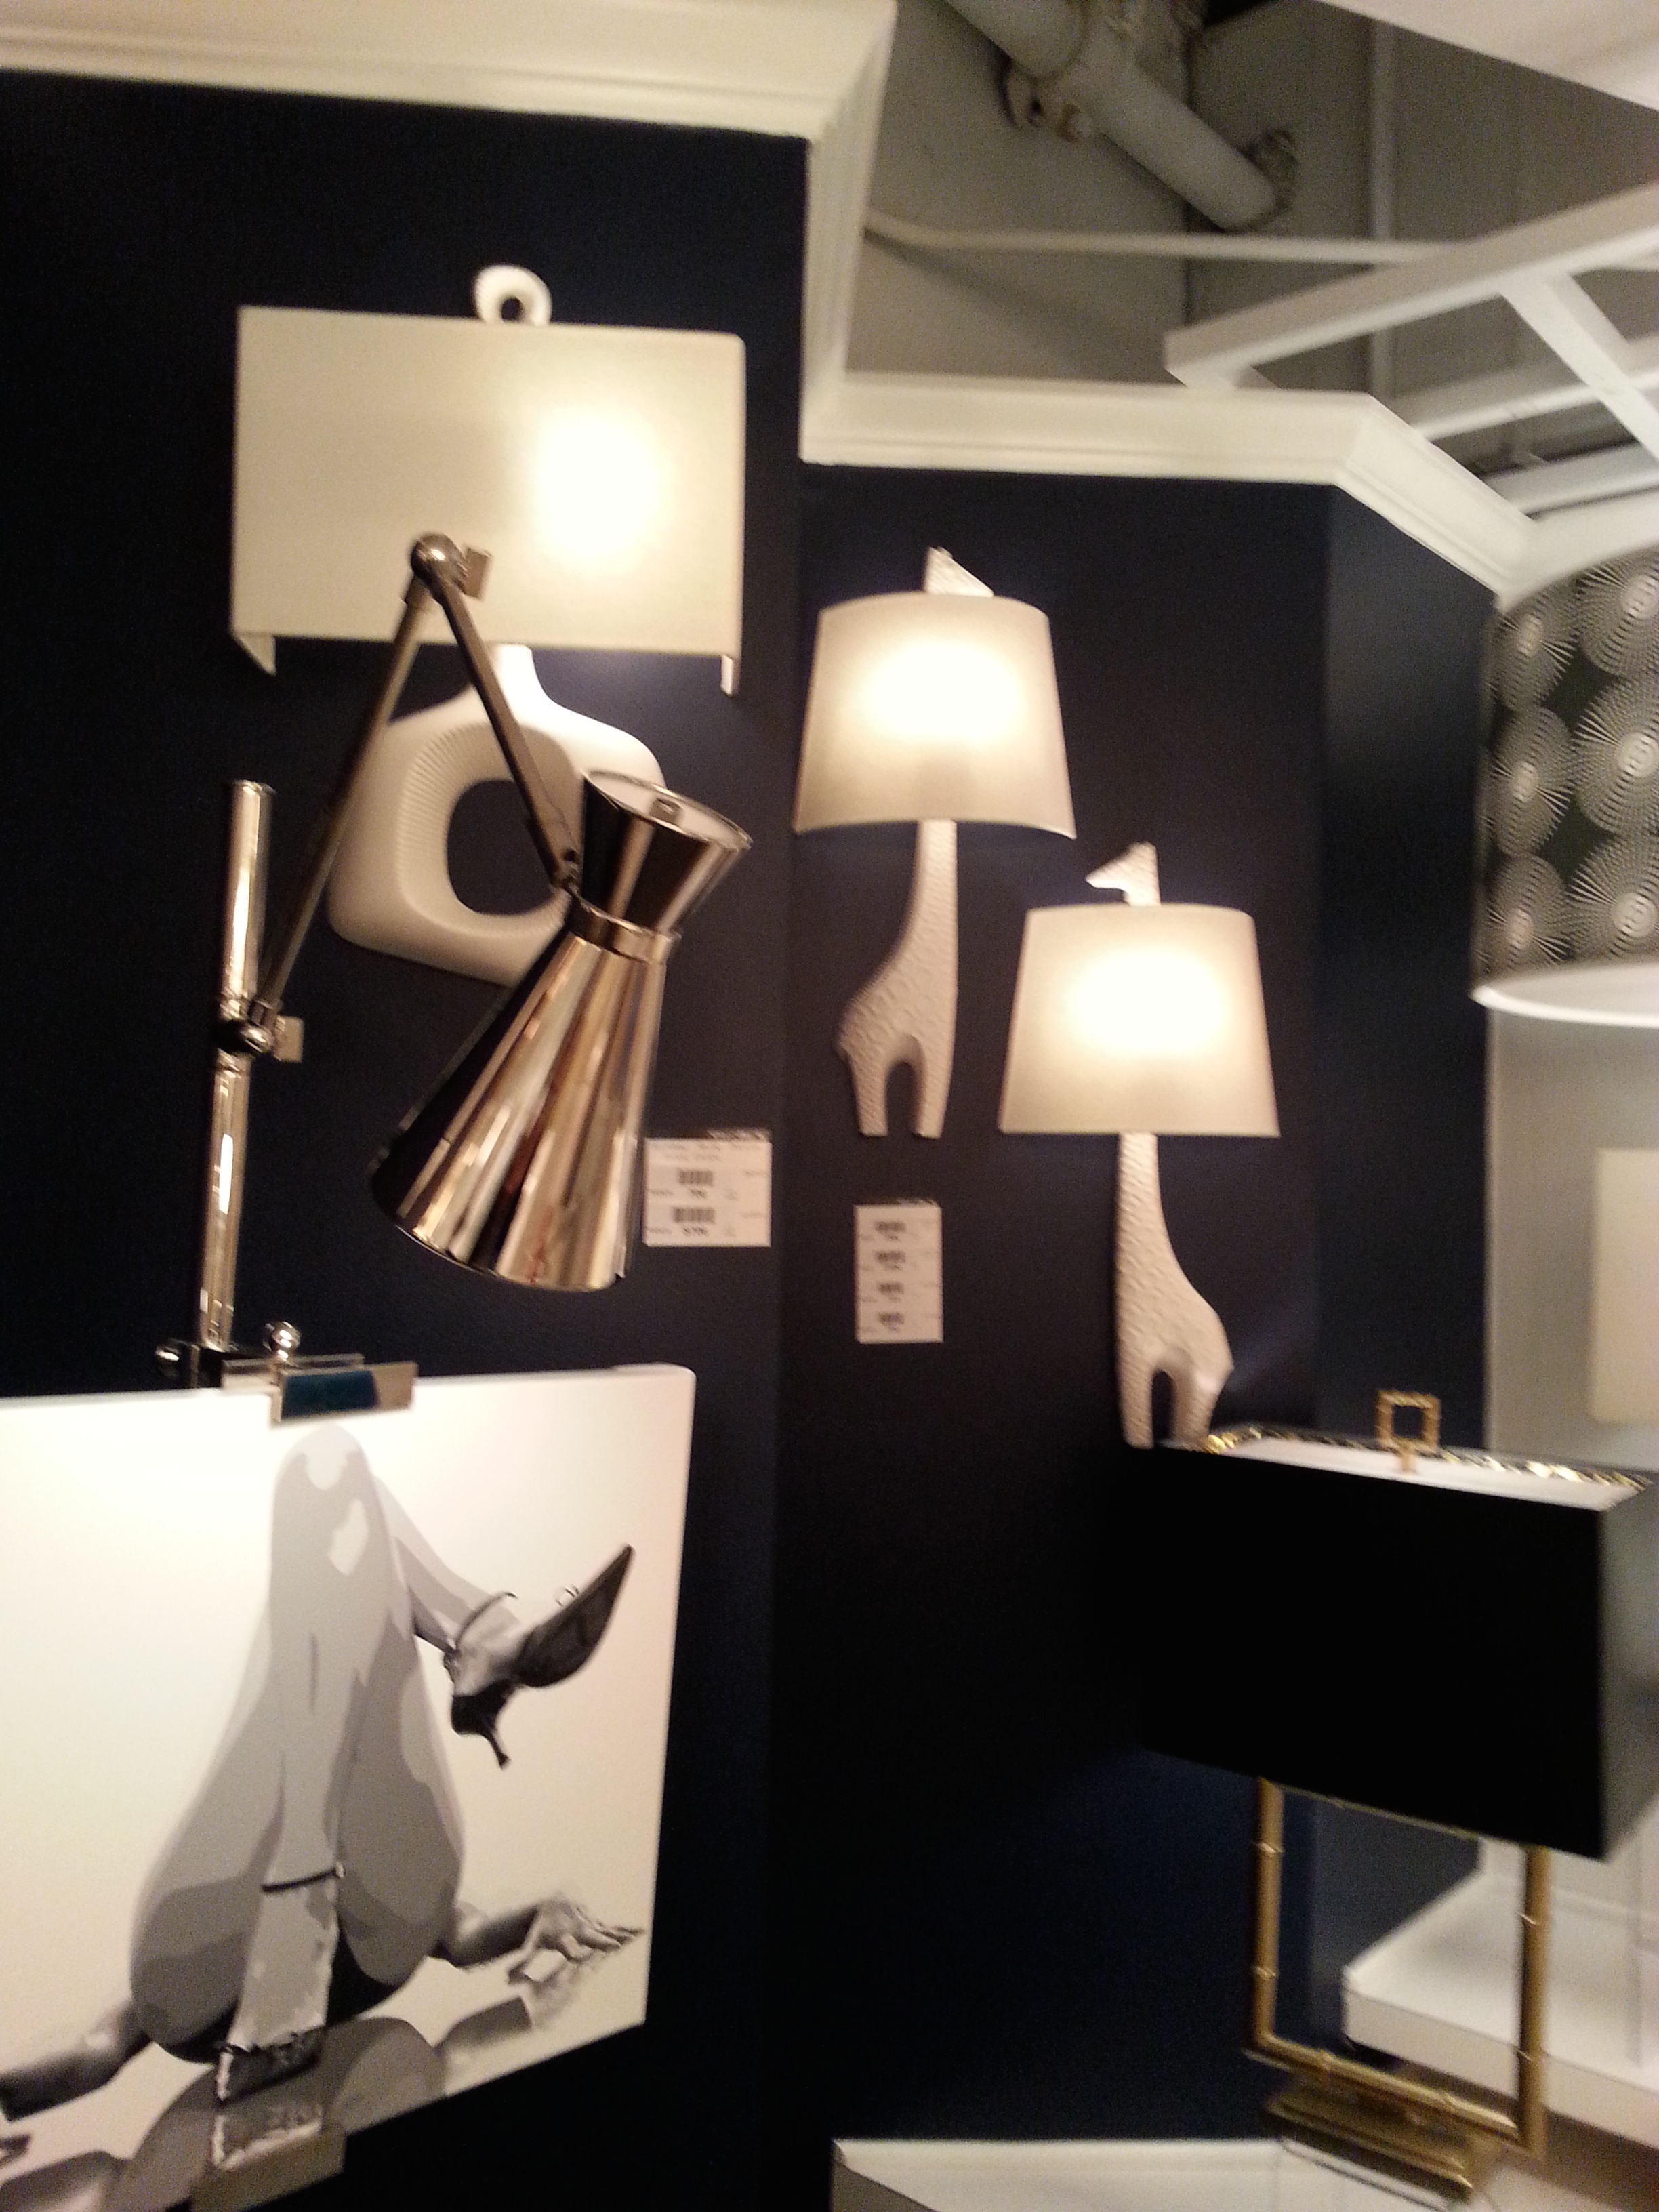 The Jonathan Adler sconces have been a long time favorite. It would be killer in a nursery or just a spot that needs a little whimsical fun.